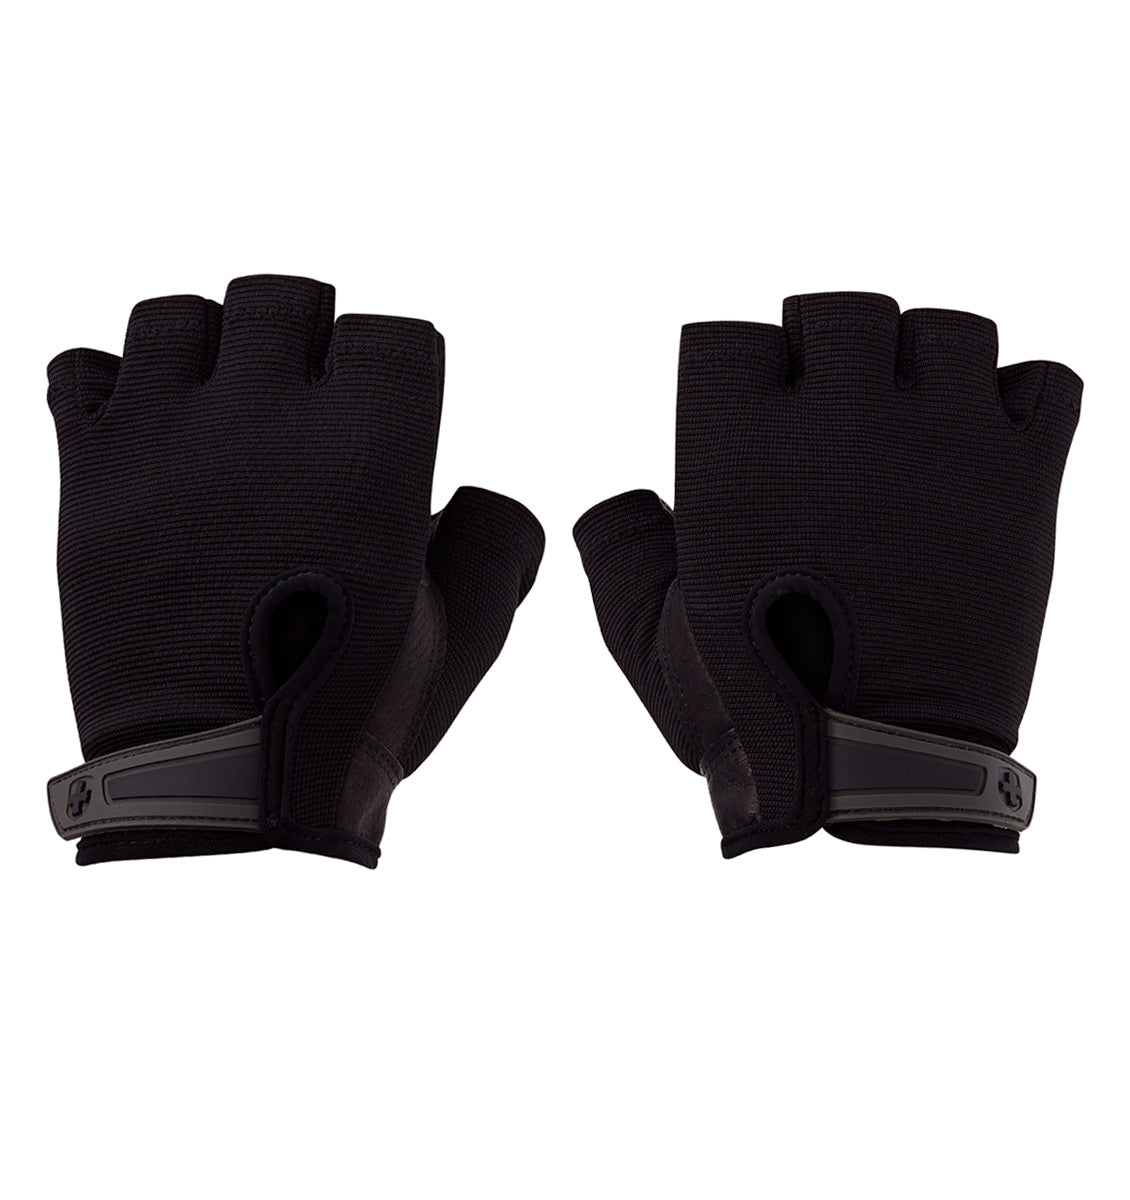 0155 Harbinger Power Series Mens Gym Gloves Pair Top